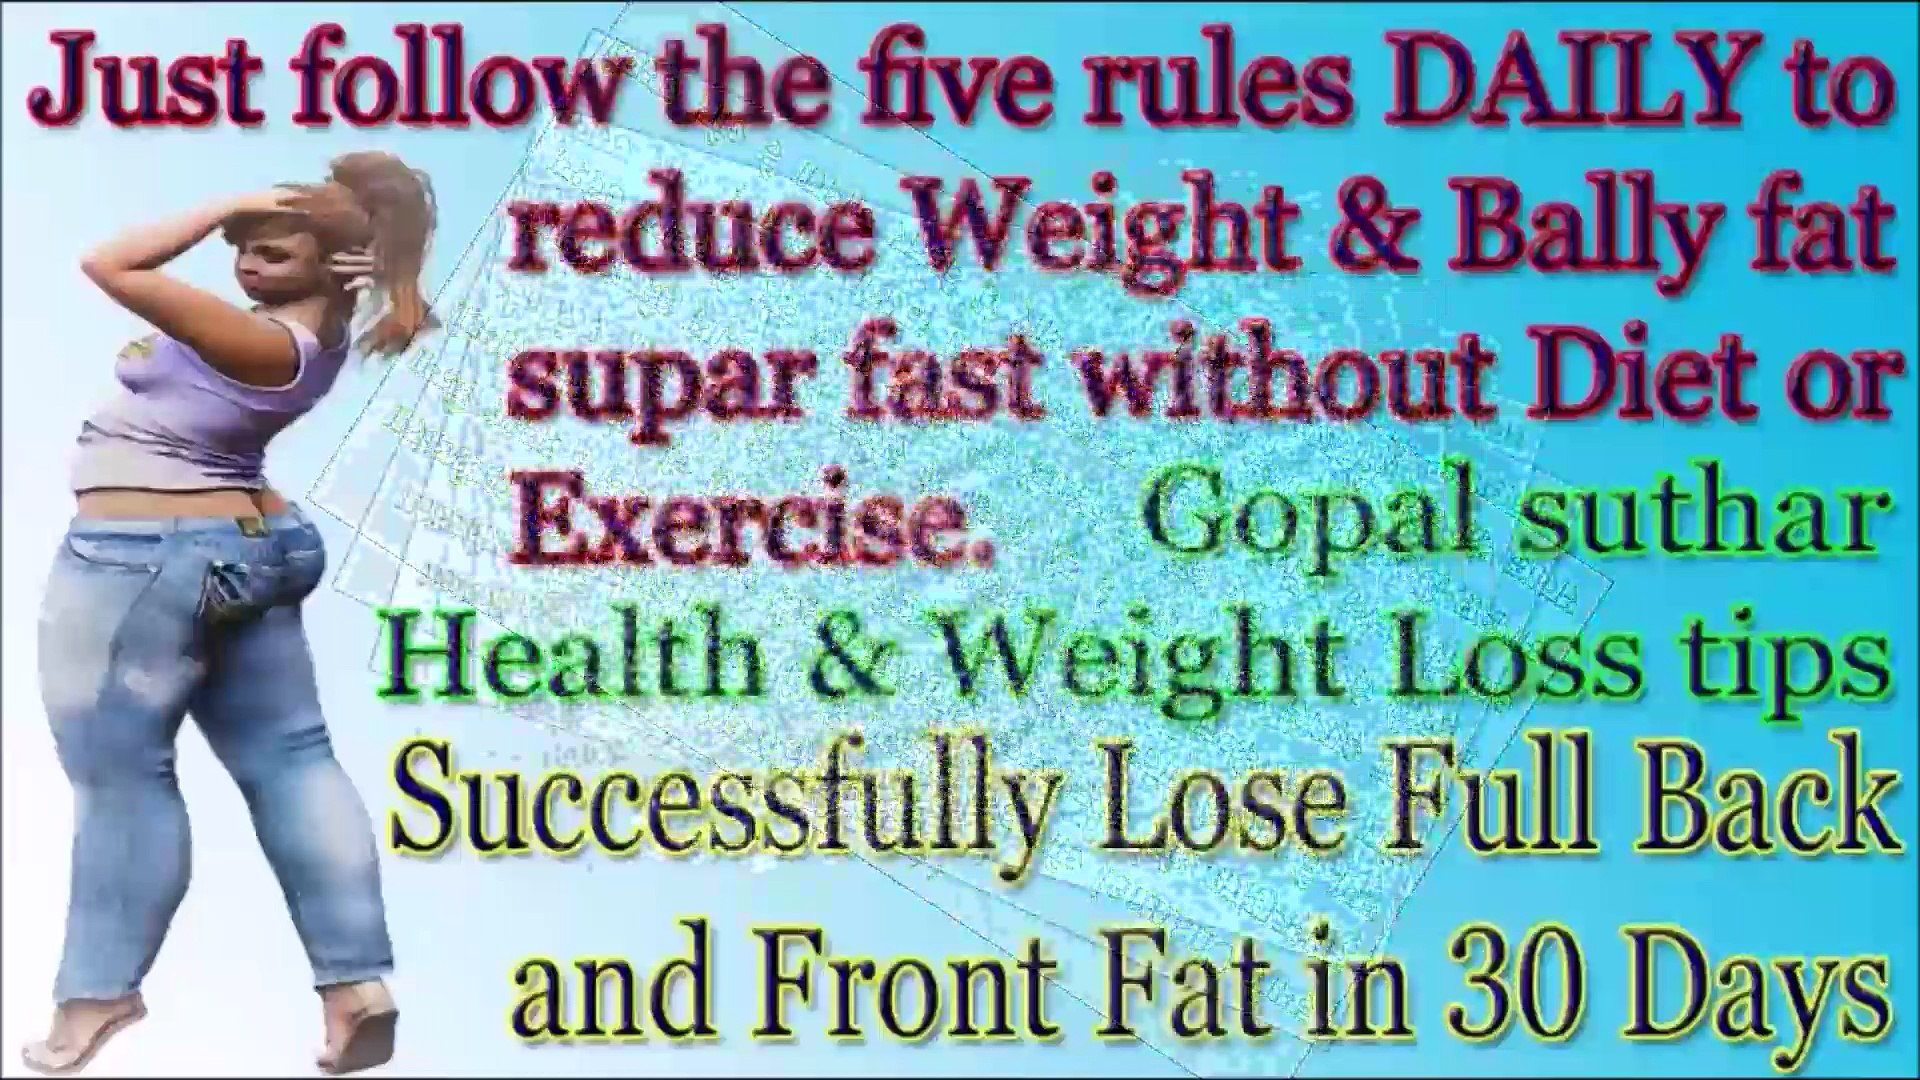 Just follow five rules DAILY to reduce weight & bally fat  without diet or exercise | Super rule